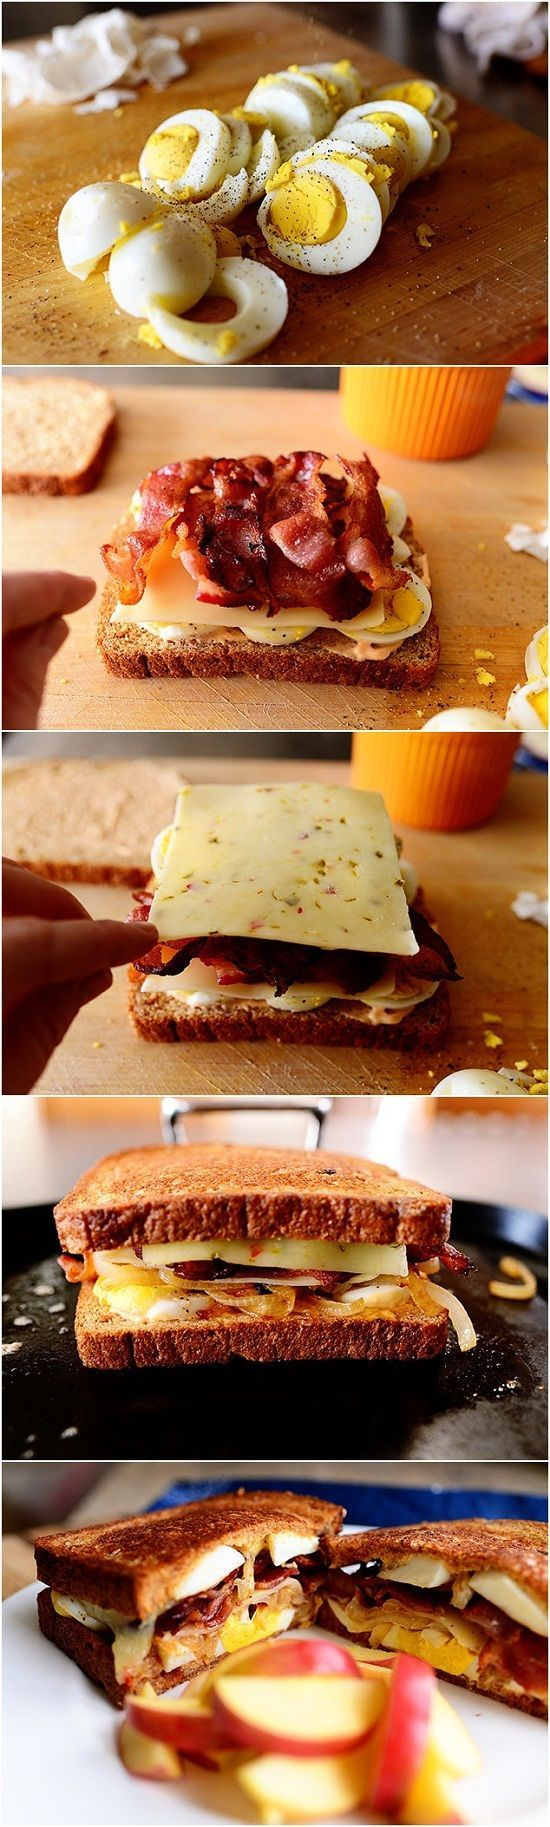 Ultimate Grilled Cheese Sandwich something new to try for dinner